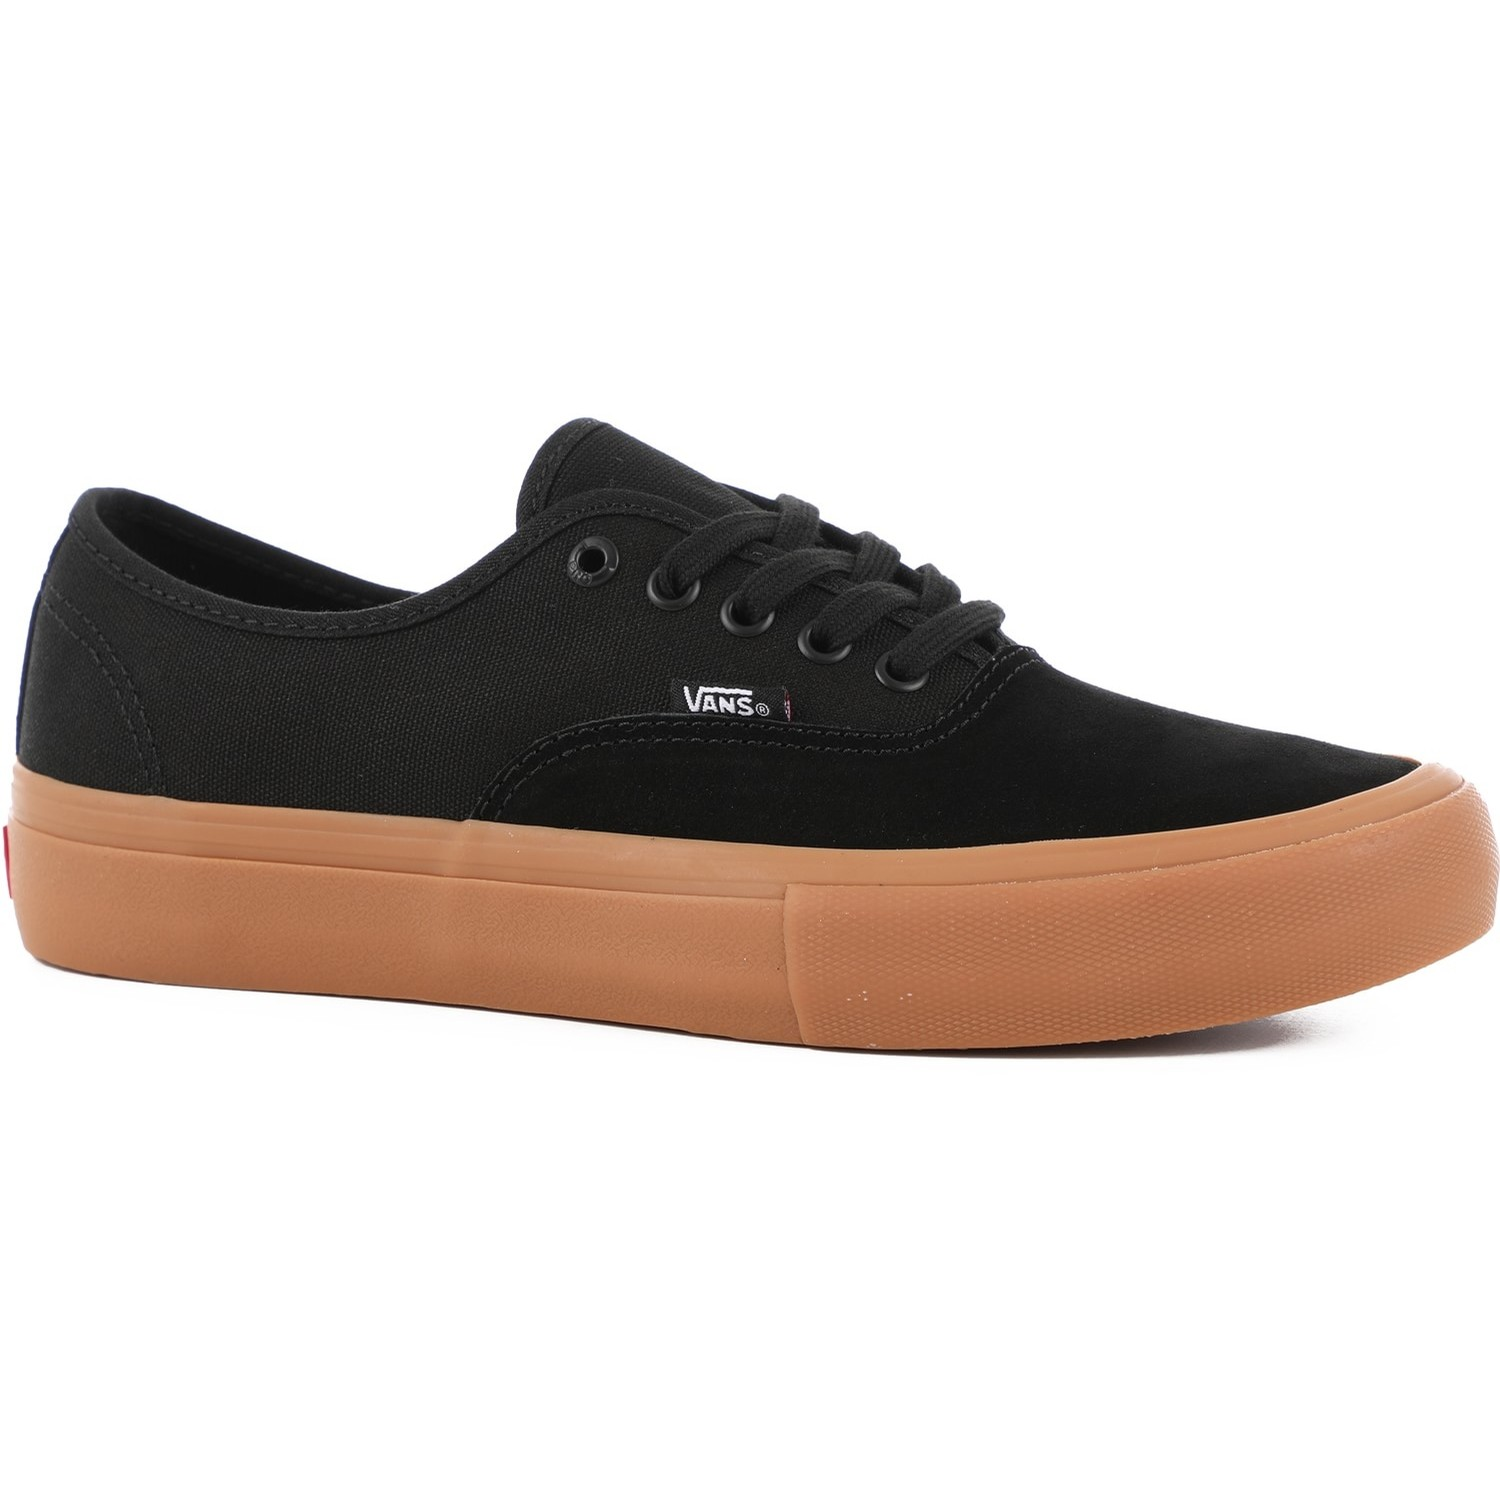 Authentic Pro (Black/Classic Gum)